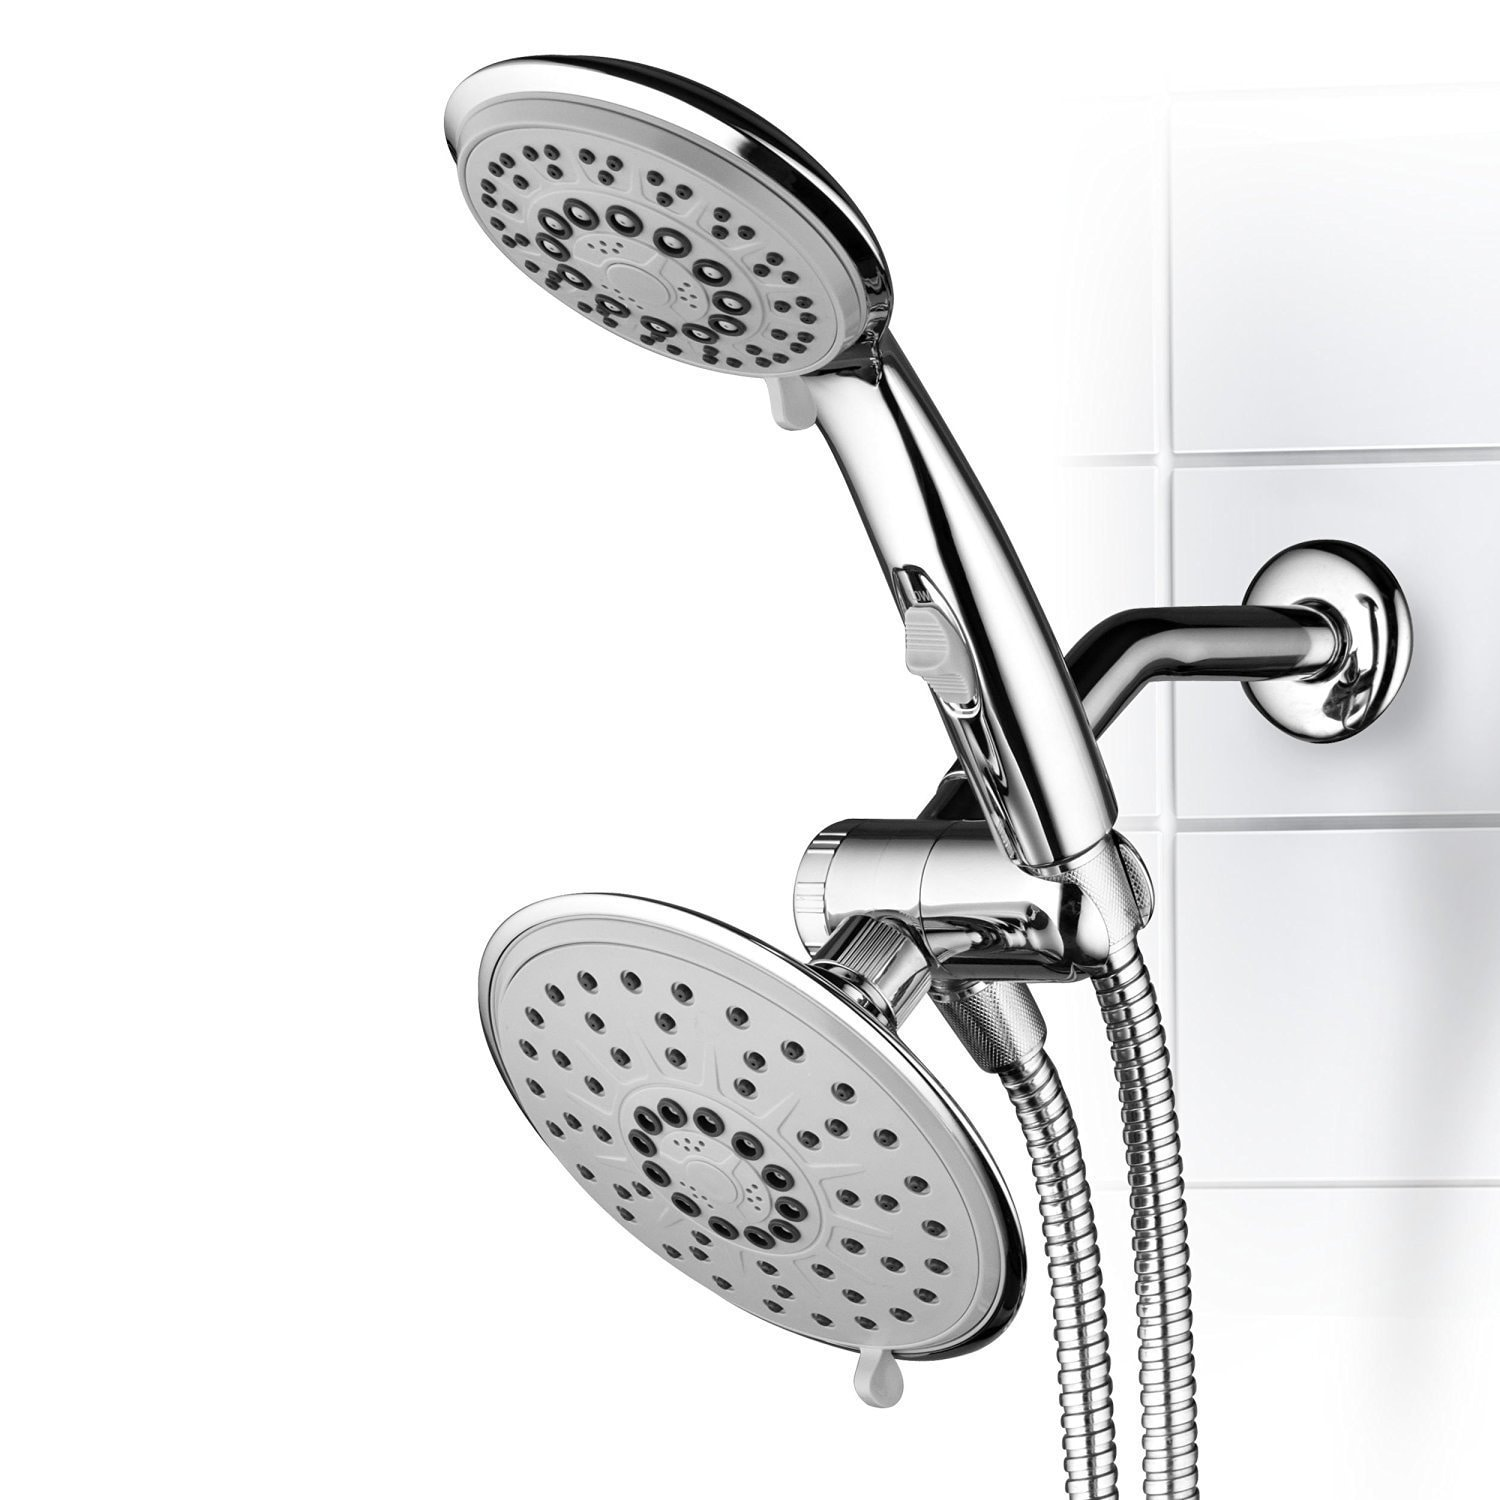 Hydroluxe 30 Setting 3 Way Rainfall Shower Head And Handheld Shower Combo